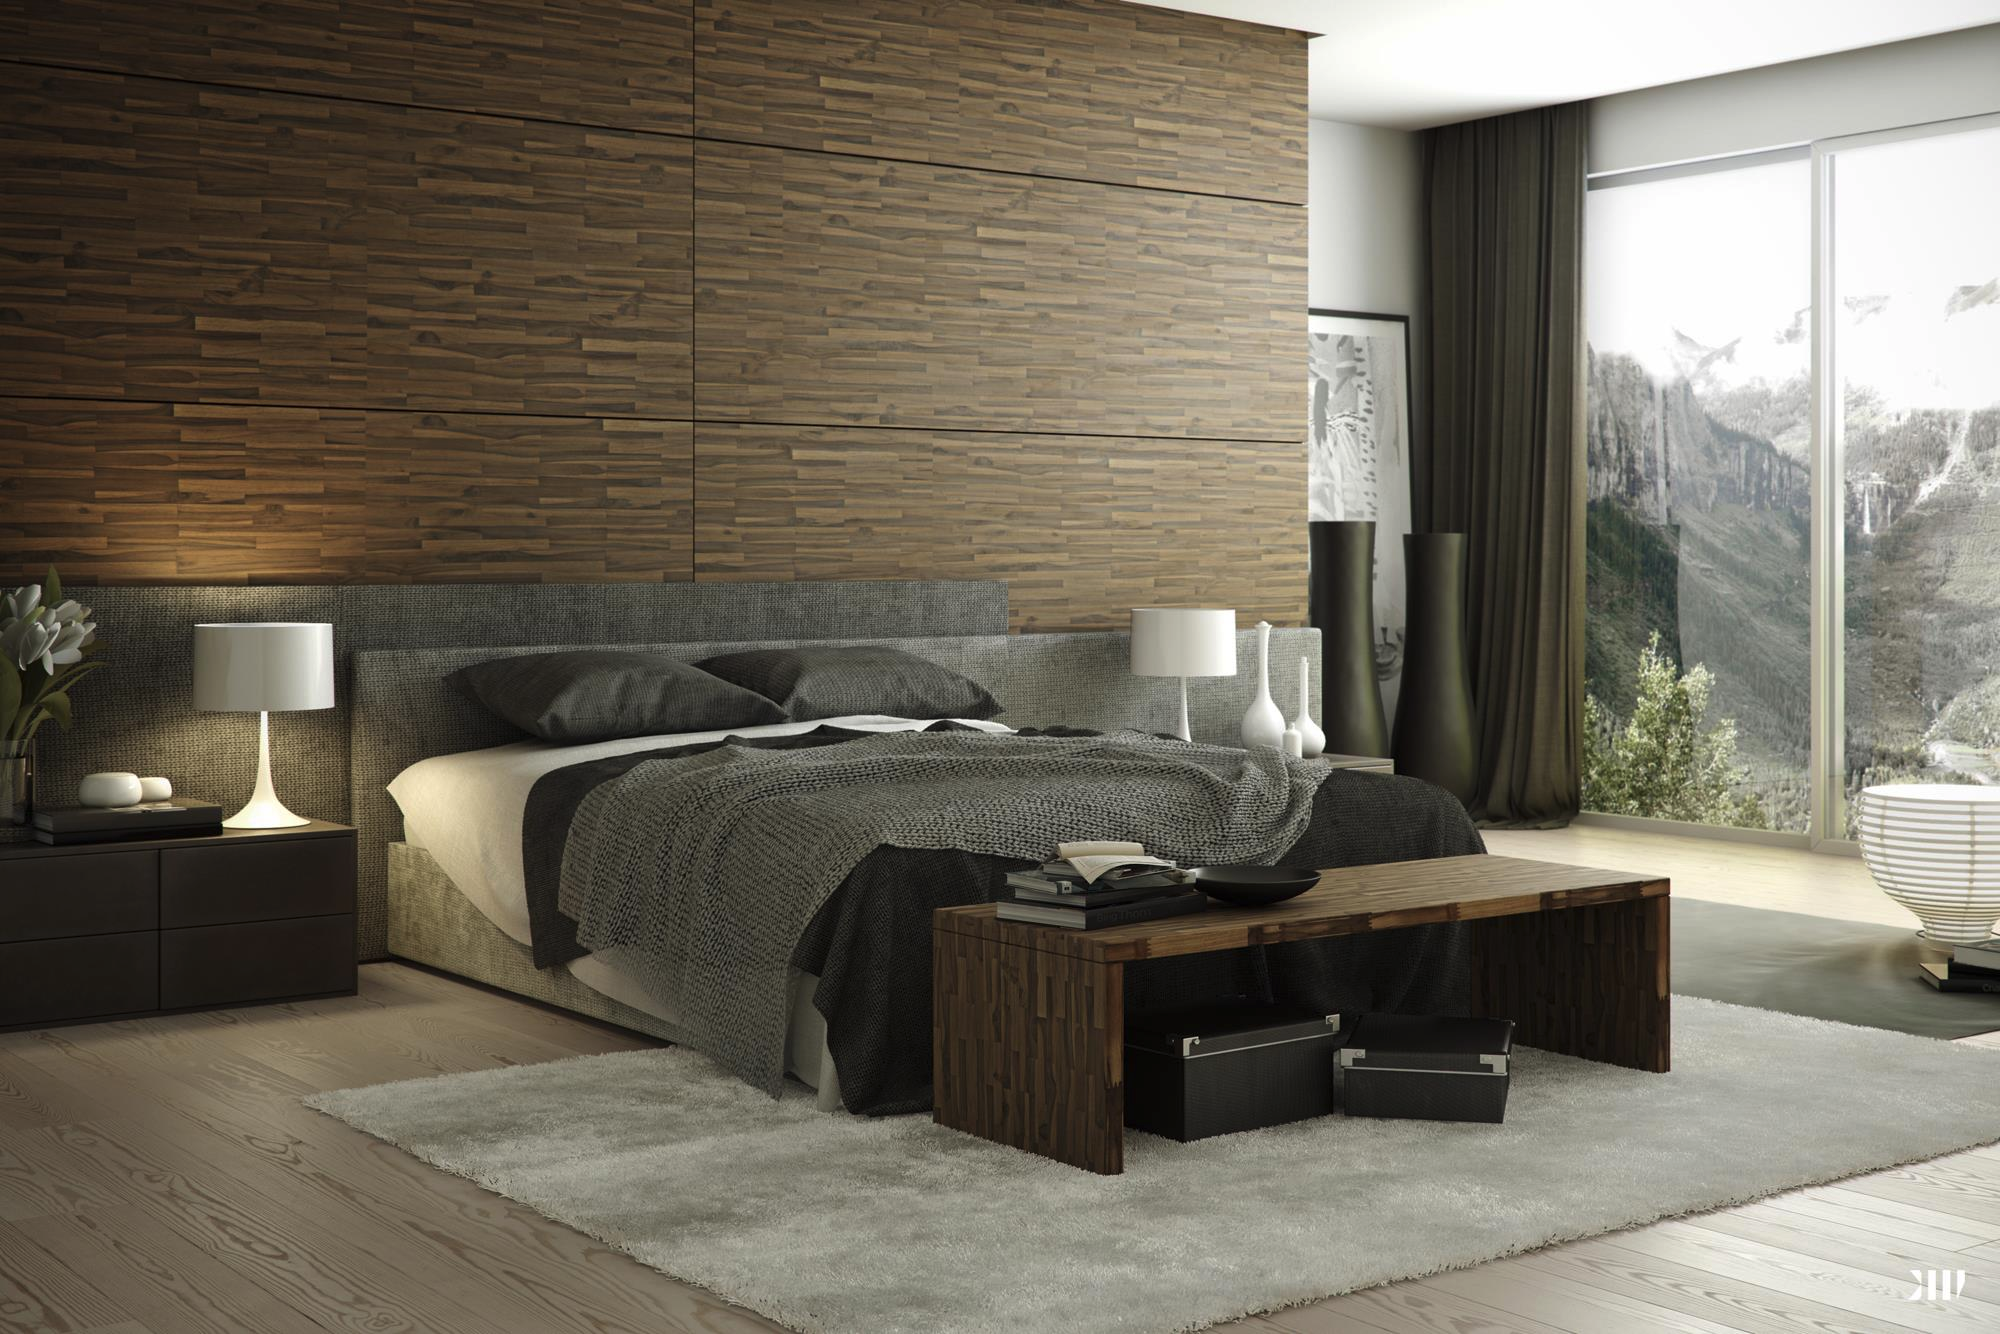 Beautiful bedrooms perfect for lounging all day - Imagenes de dormitorios ...